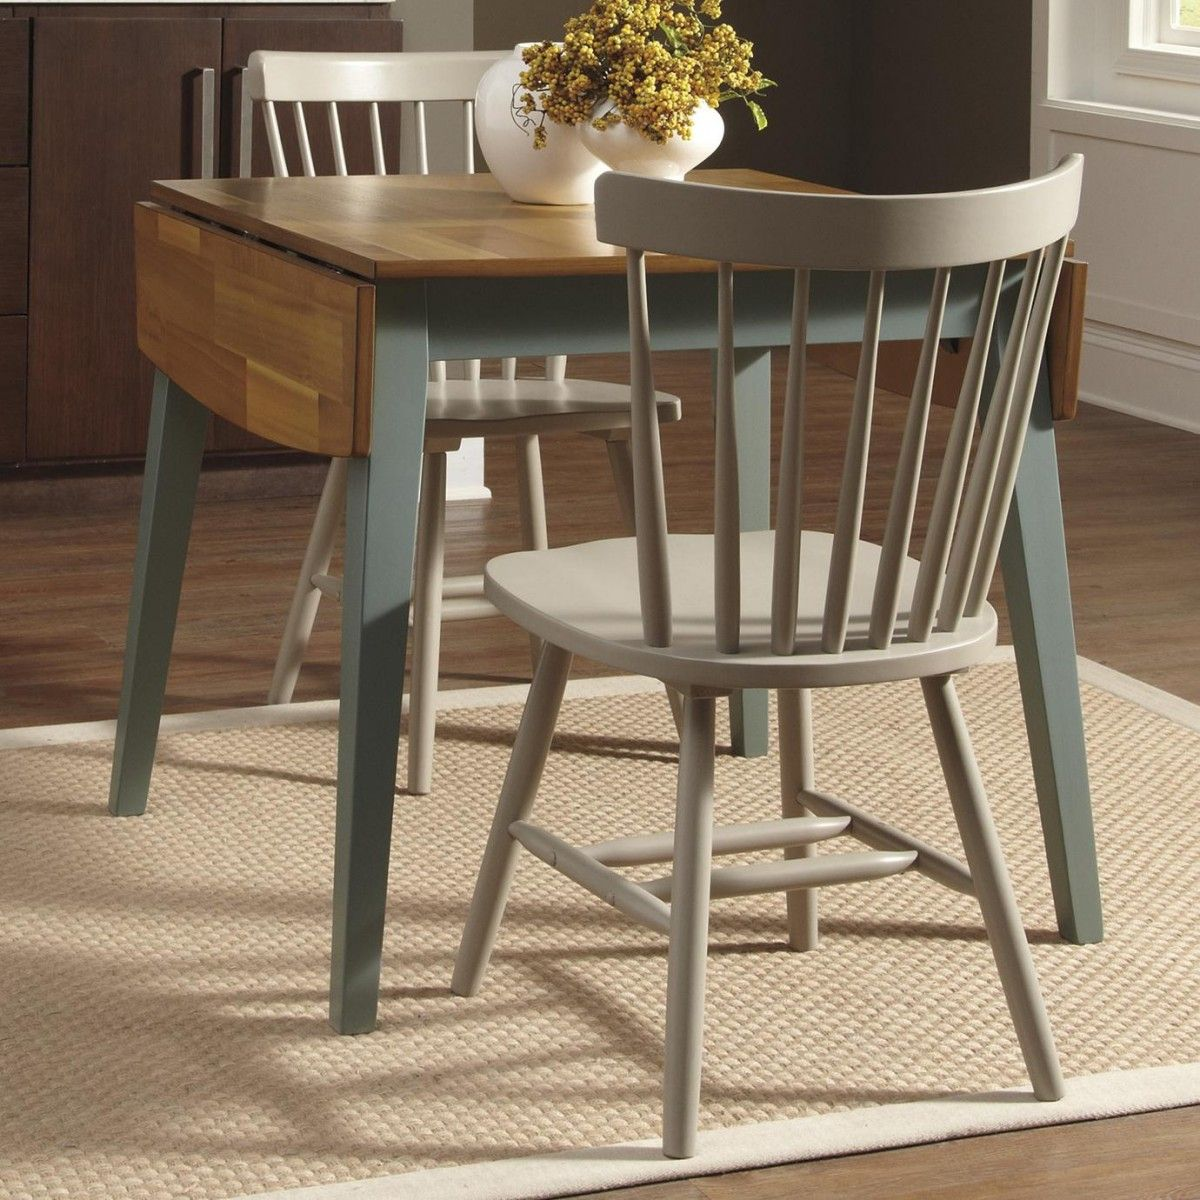 drop leaf kitchen tables for small spaces replace countertop etkezo pinterest